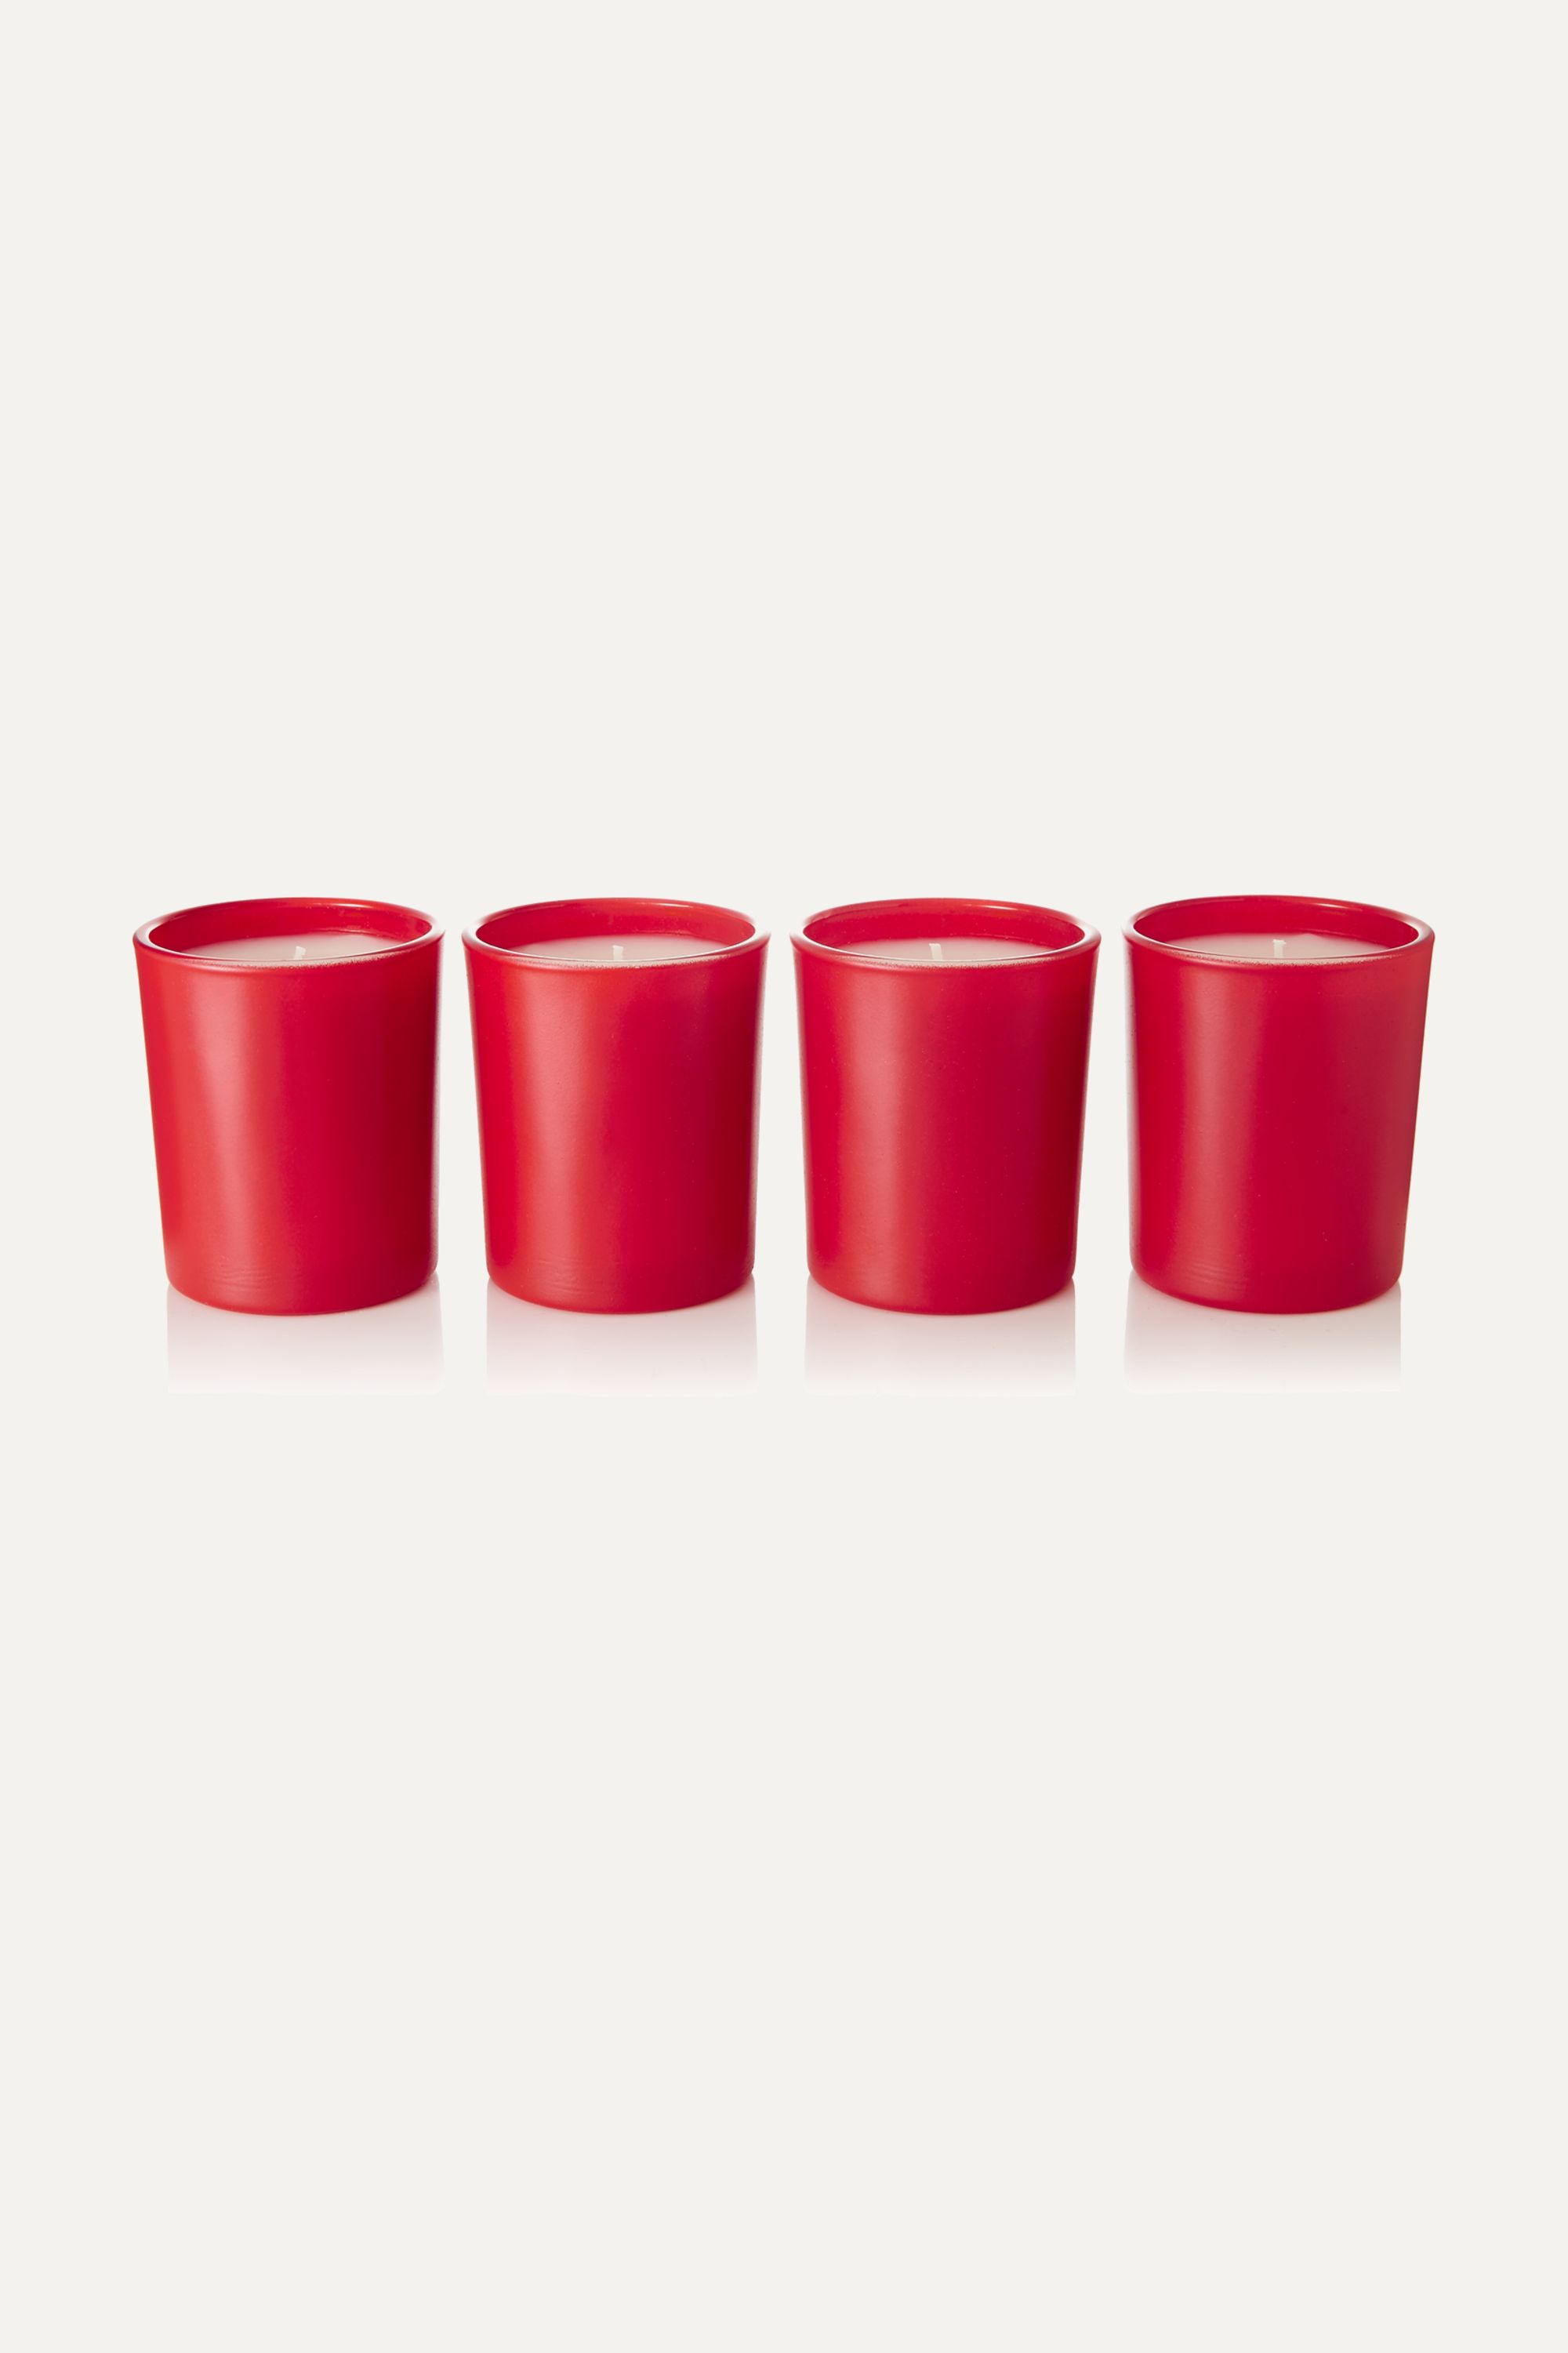 Bella Freud Parfum Loving Mini set of four candles, 4 x 70g